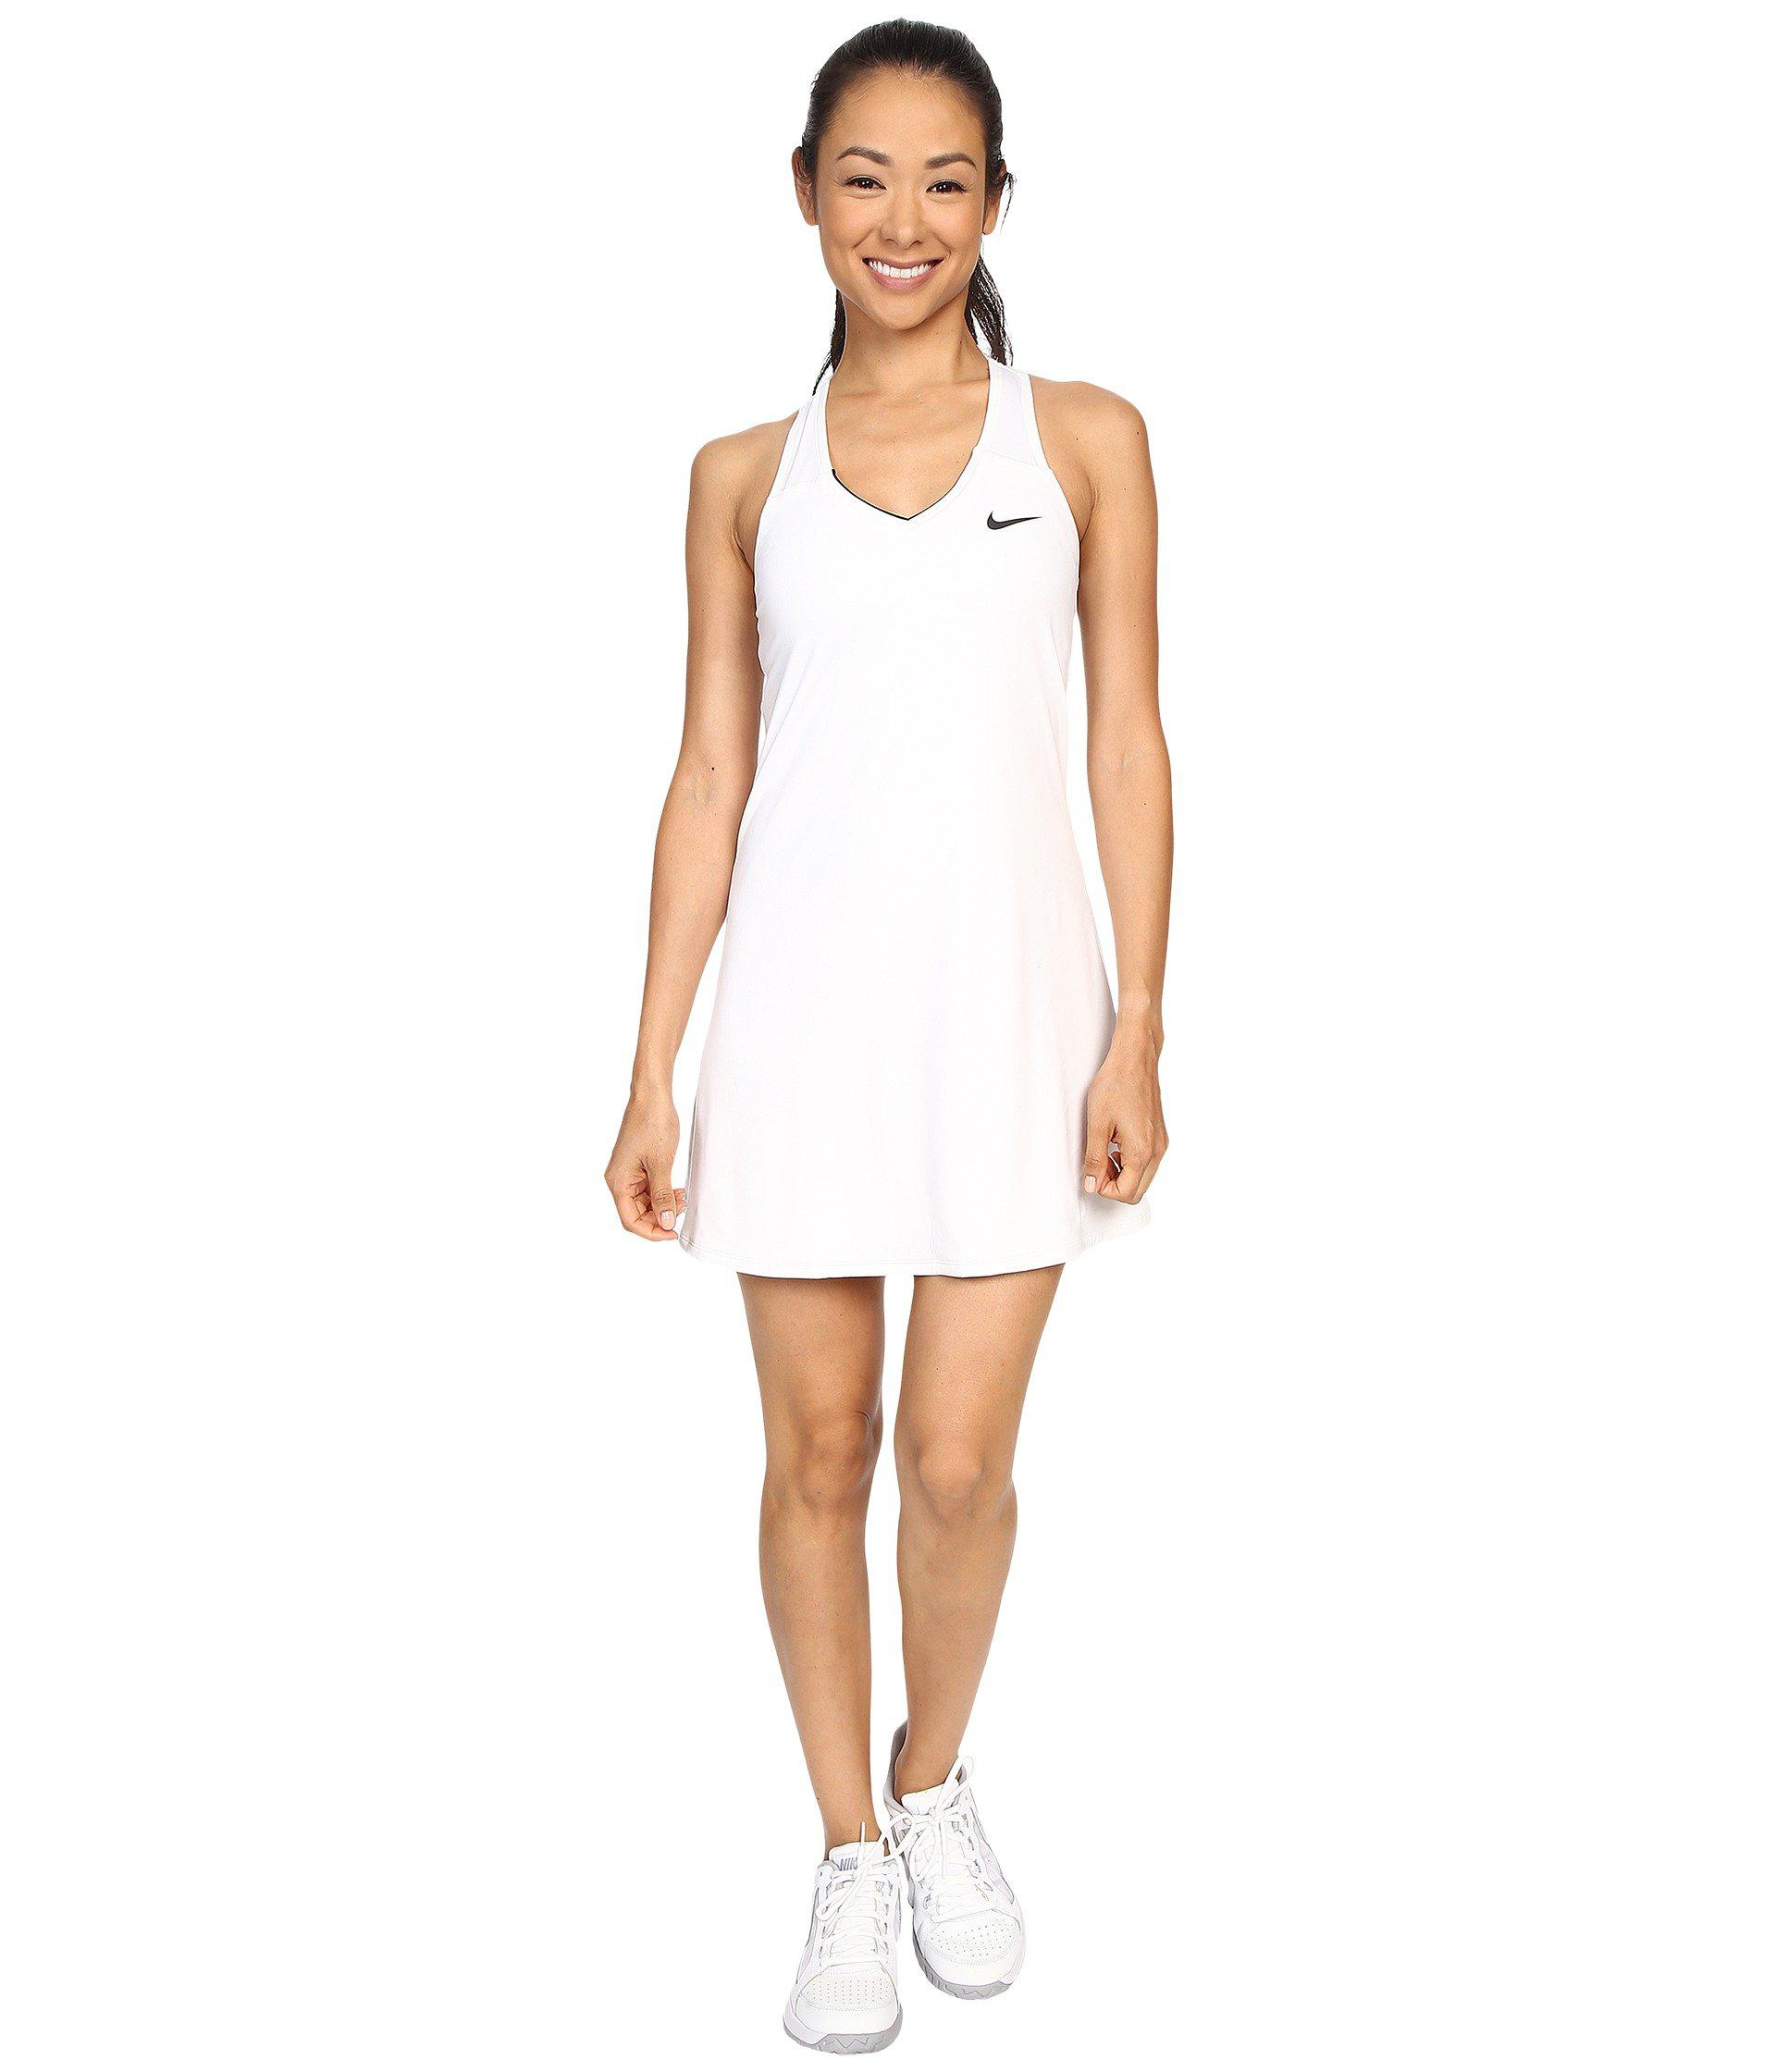 09f4c170438 Lyst - Nike Court Pure Tennis Dress in White - Save 25%